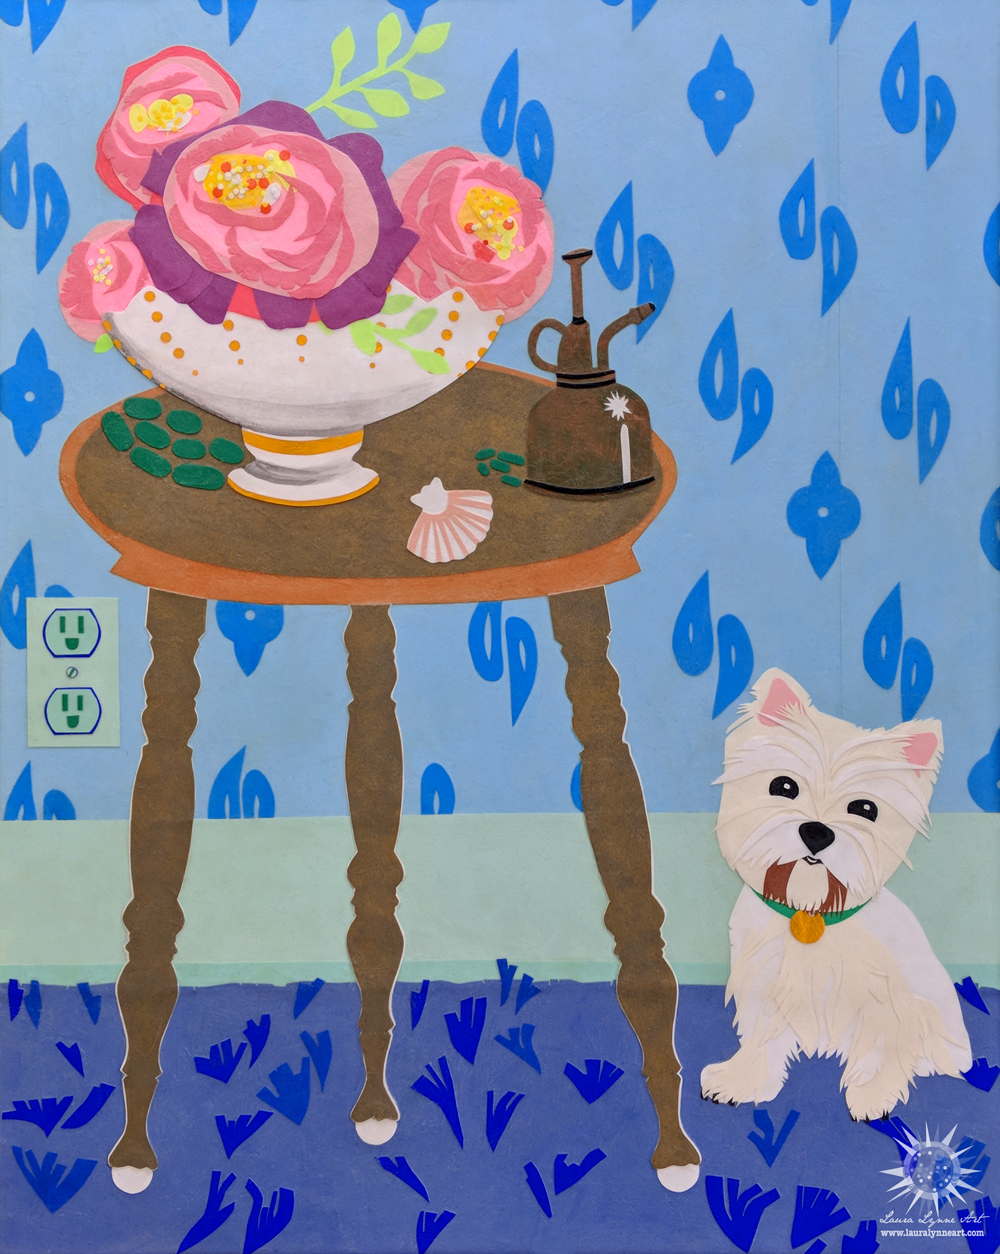 Still life with West Highland Terrior and Peonies on a Table with Blue Wallpaper by Laura Lynne Art.jpg